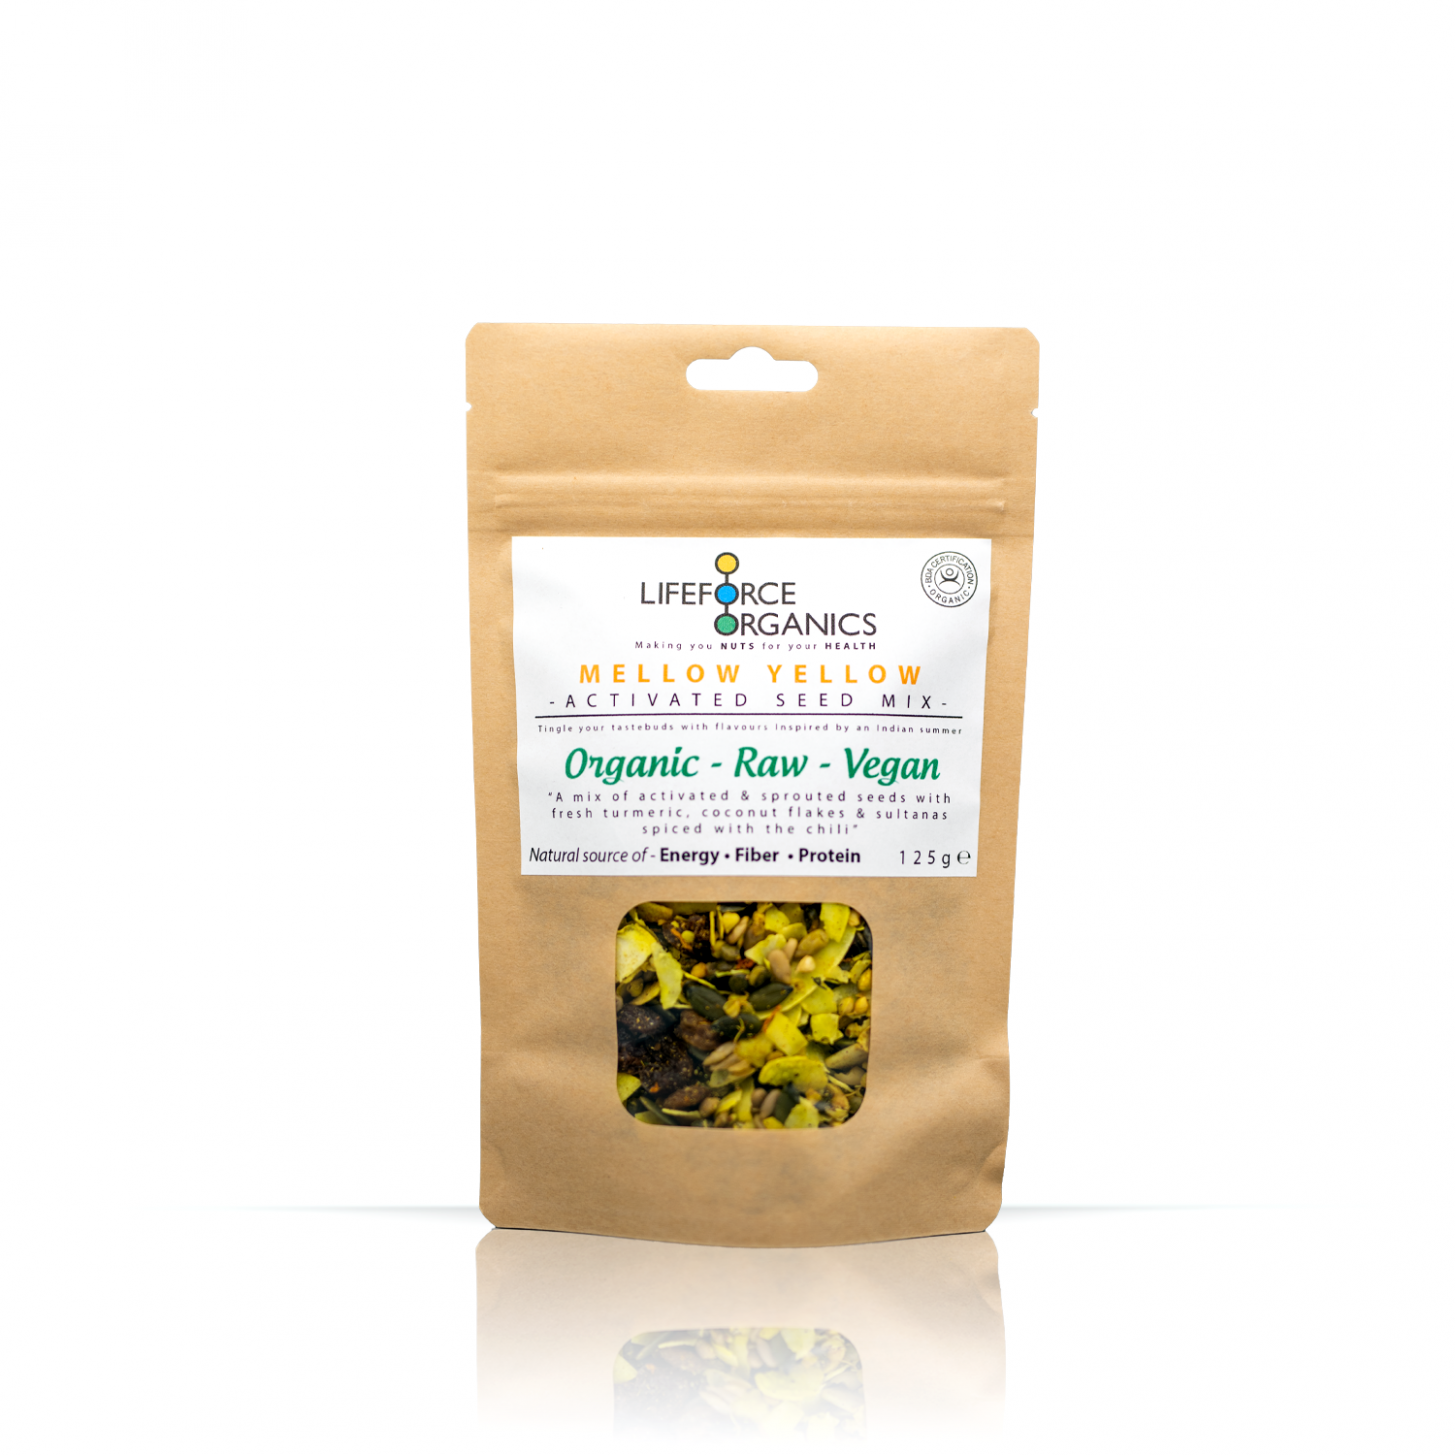 Mellow Yellow Activated Seed Mix (Organic) 125g